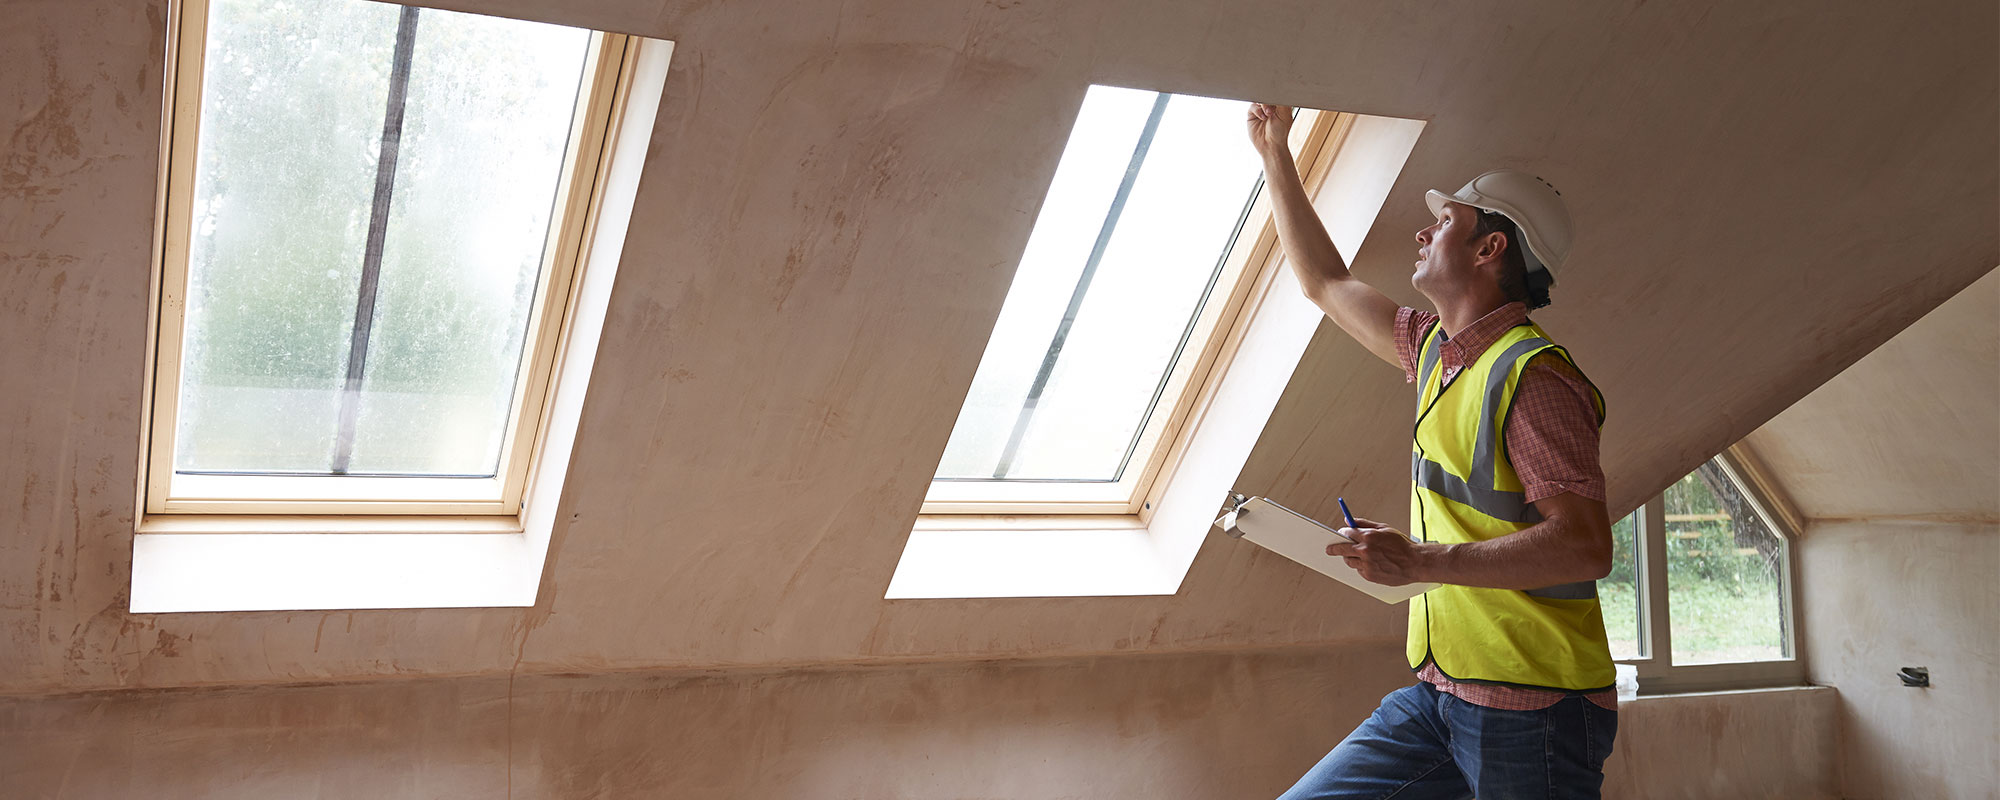 Home Inspections starting from $325